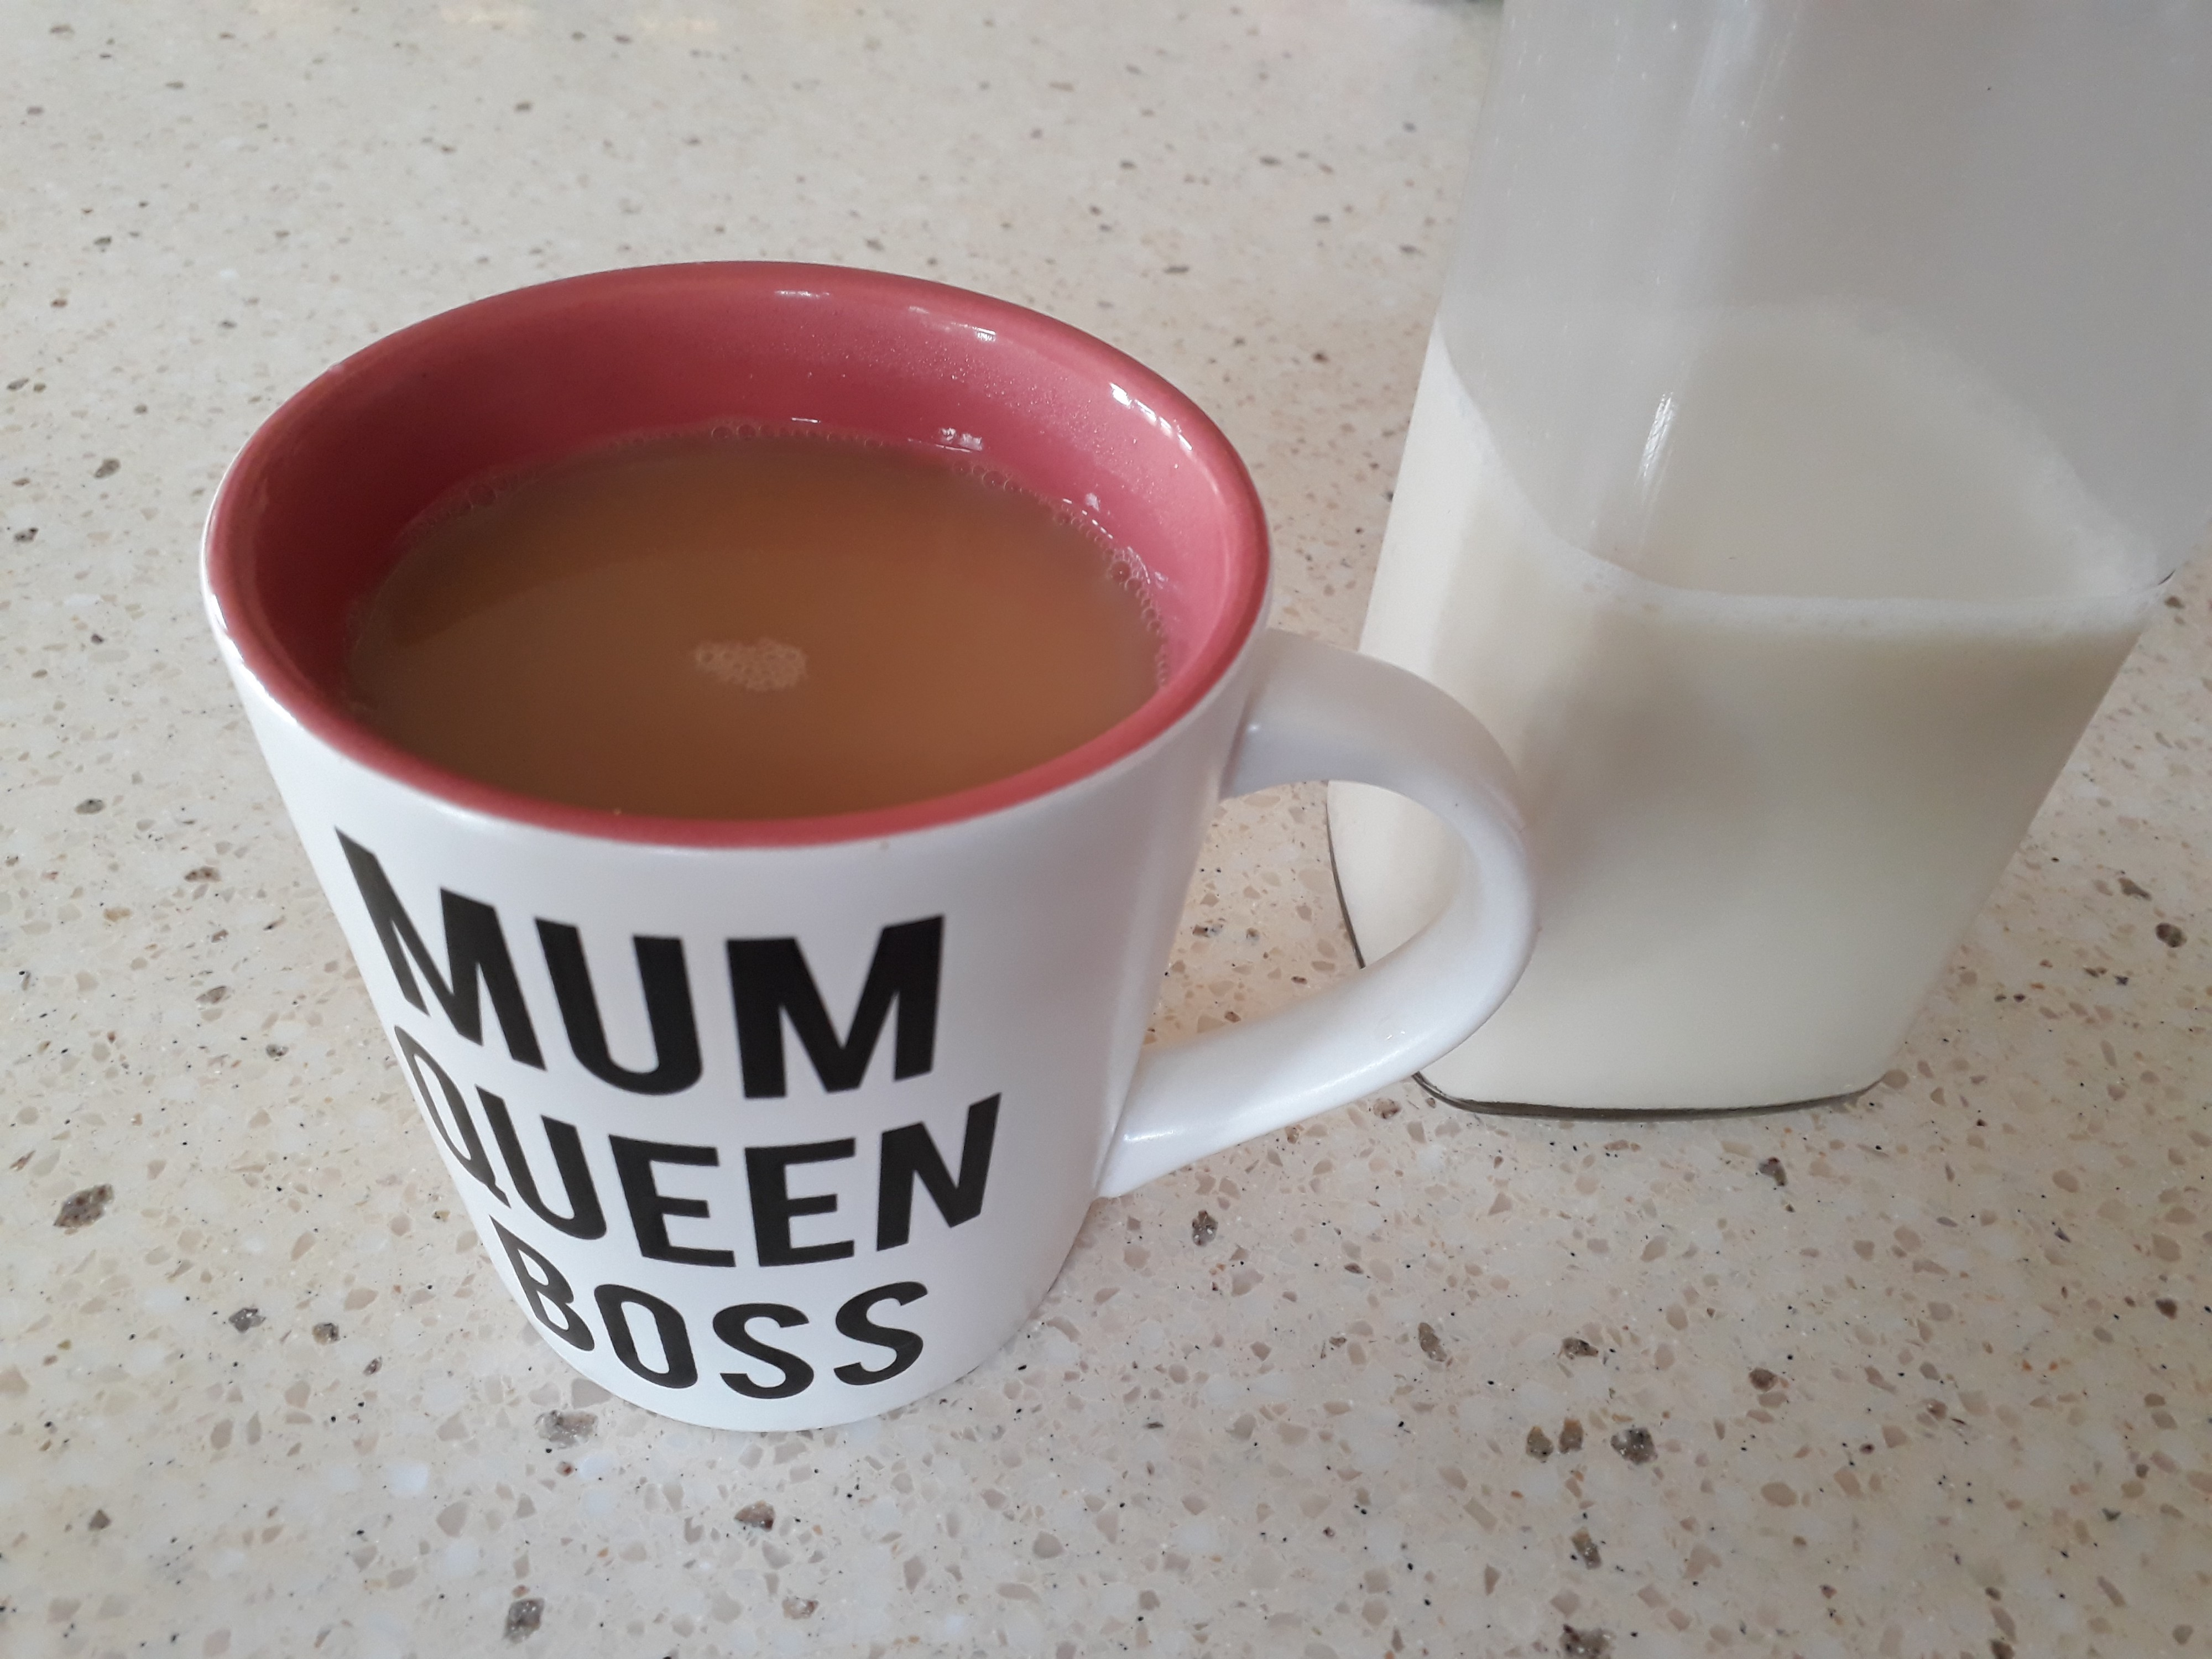 mug of tea with the words mum, queen,  boss, and a bottle of oat milk